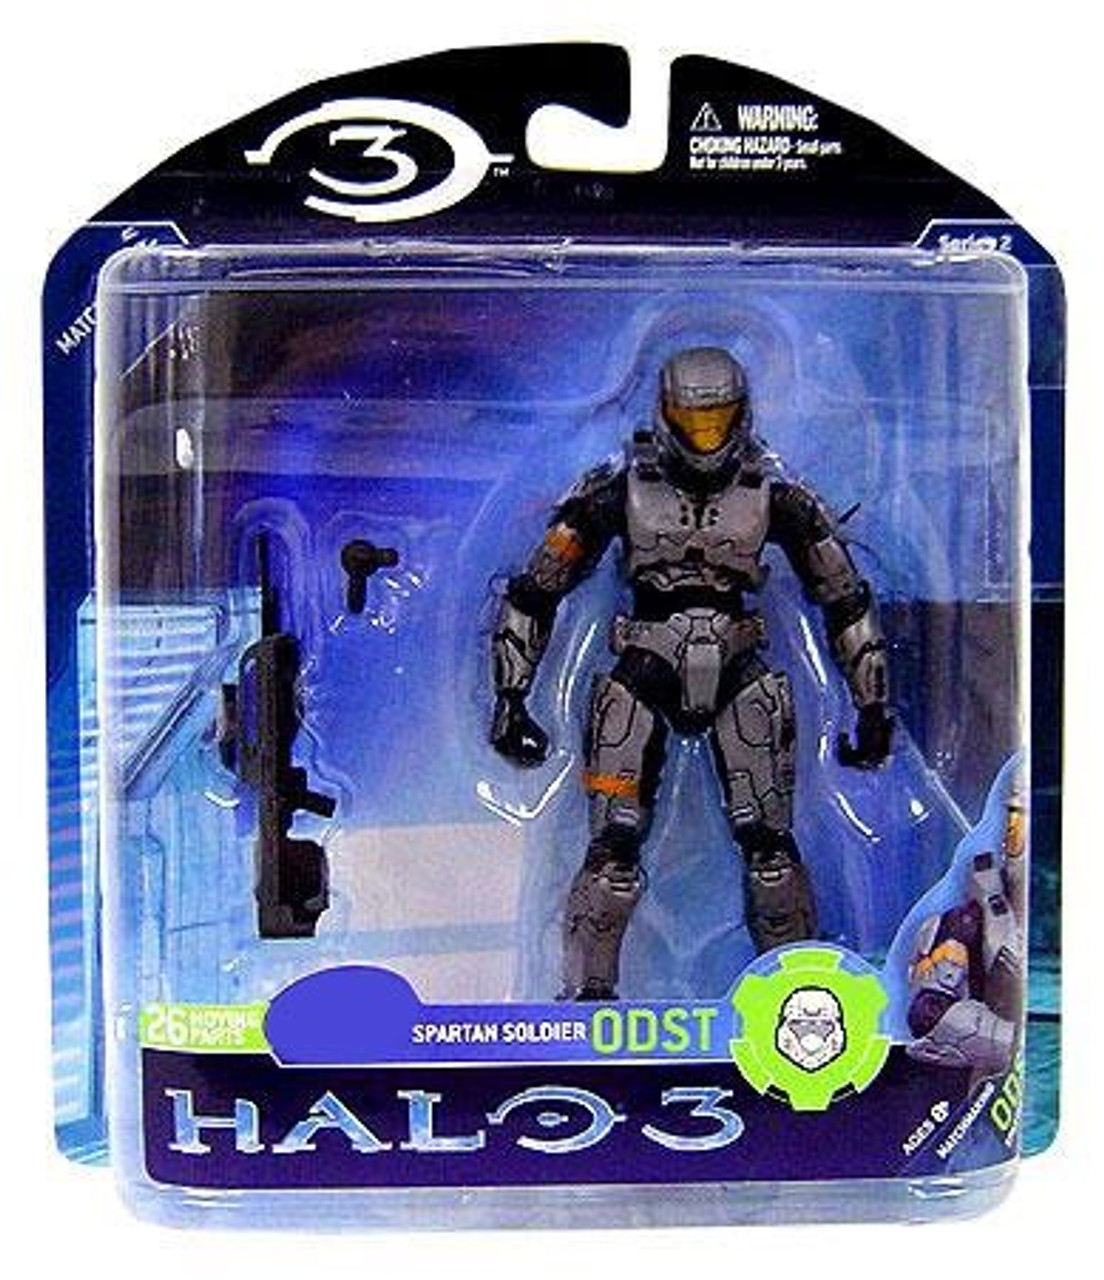 McFarlane Toys Halo 3 Series 2 Spartan Soldier ODST Exclusive Action Figure [Steel]